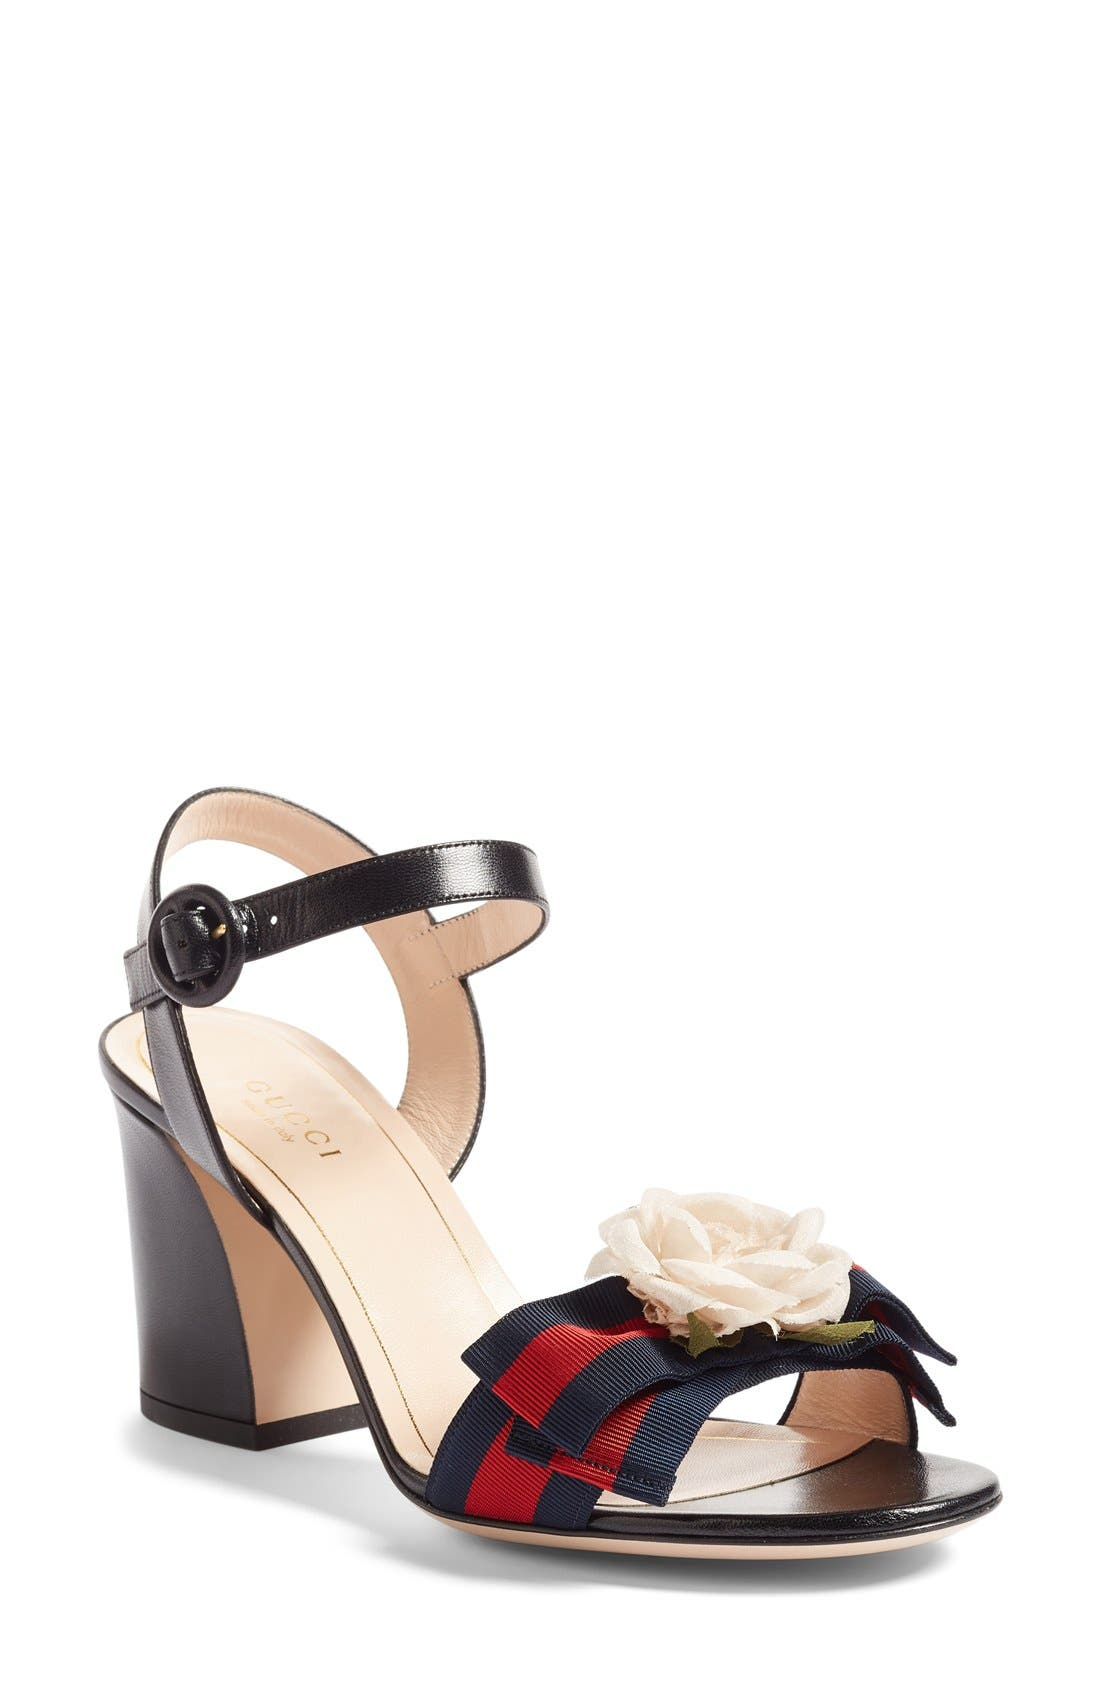 Cindi Quarter Strap Sandal,                             Main thumbnail 1, color,                             Black Leather